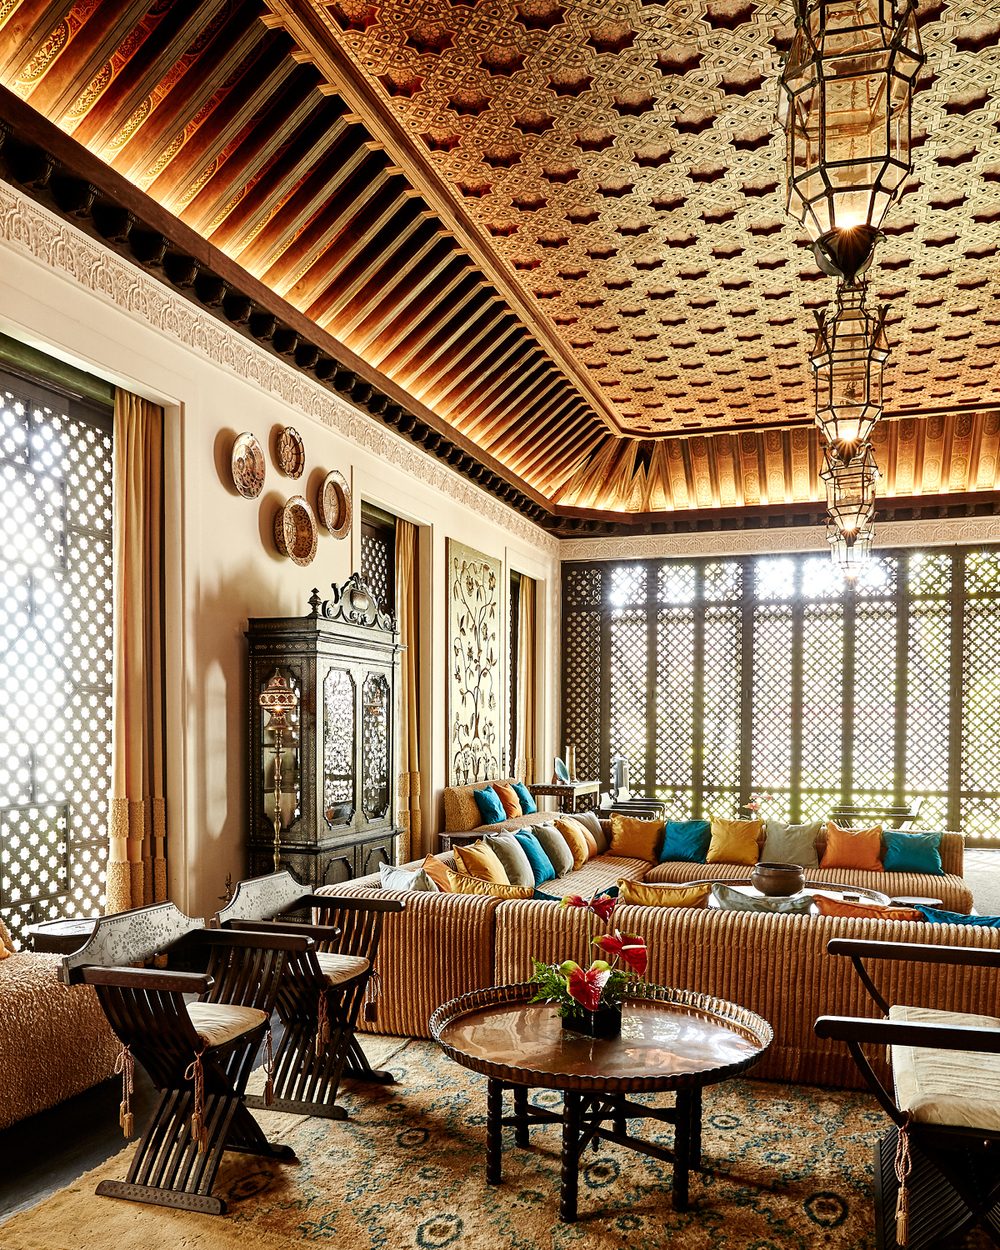 LIVING ROOM AT SHANGRI LA